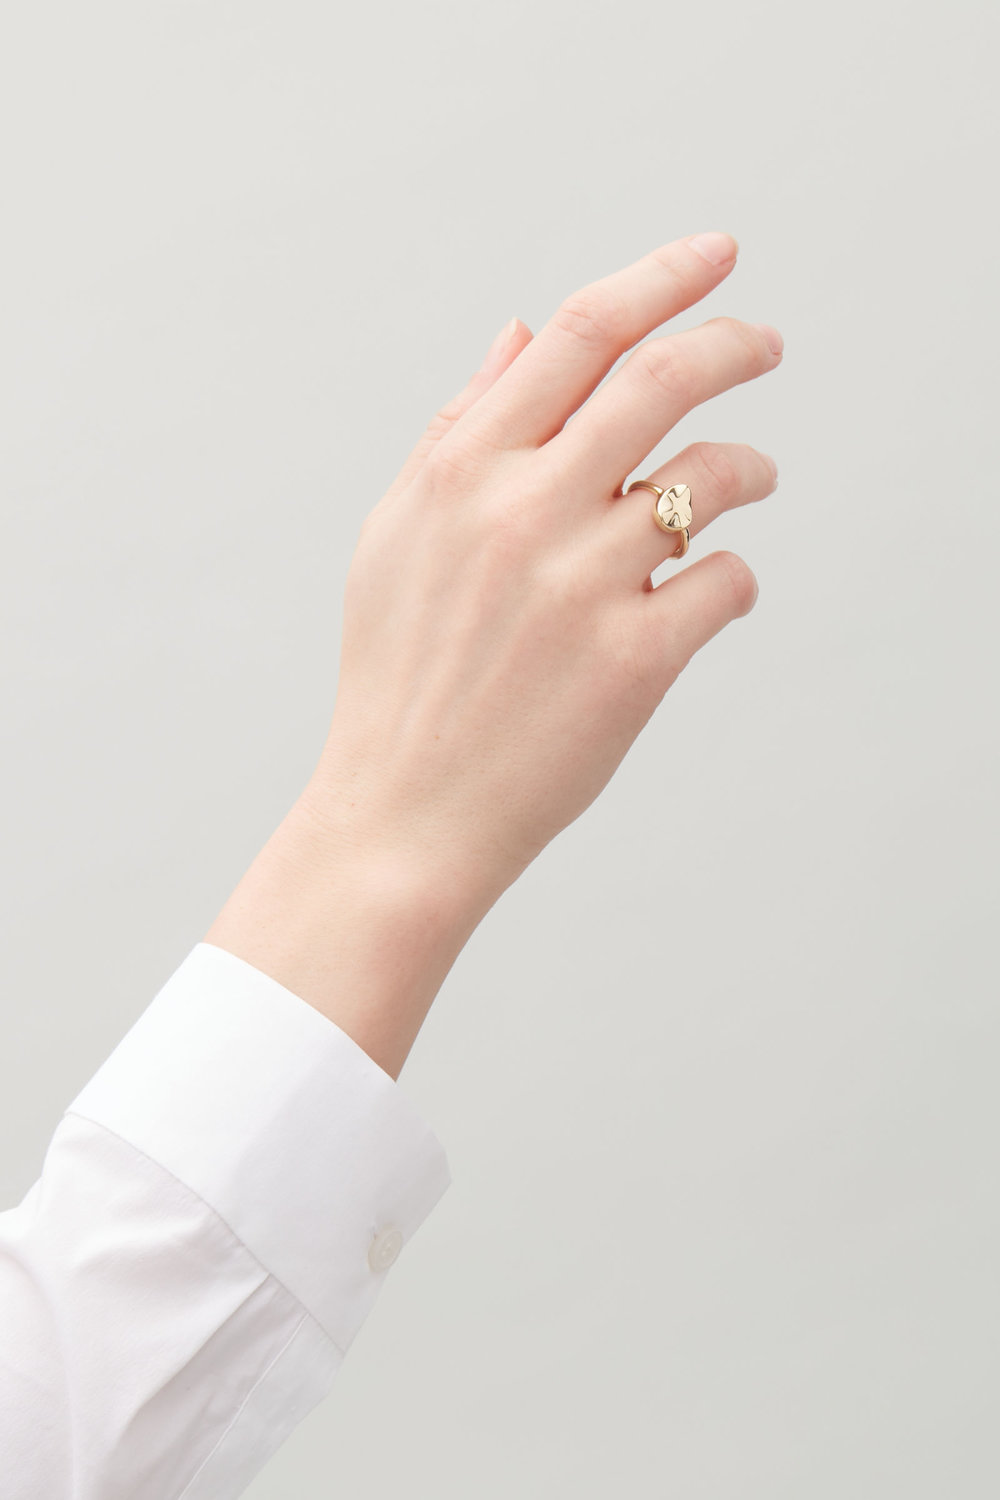 Cos ring    Was £12. Now £6